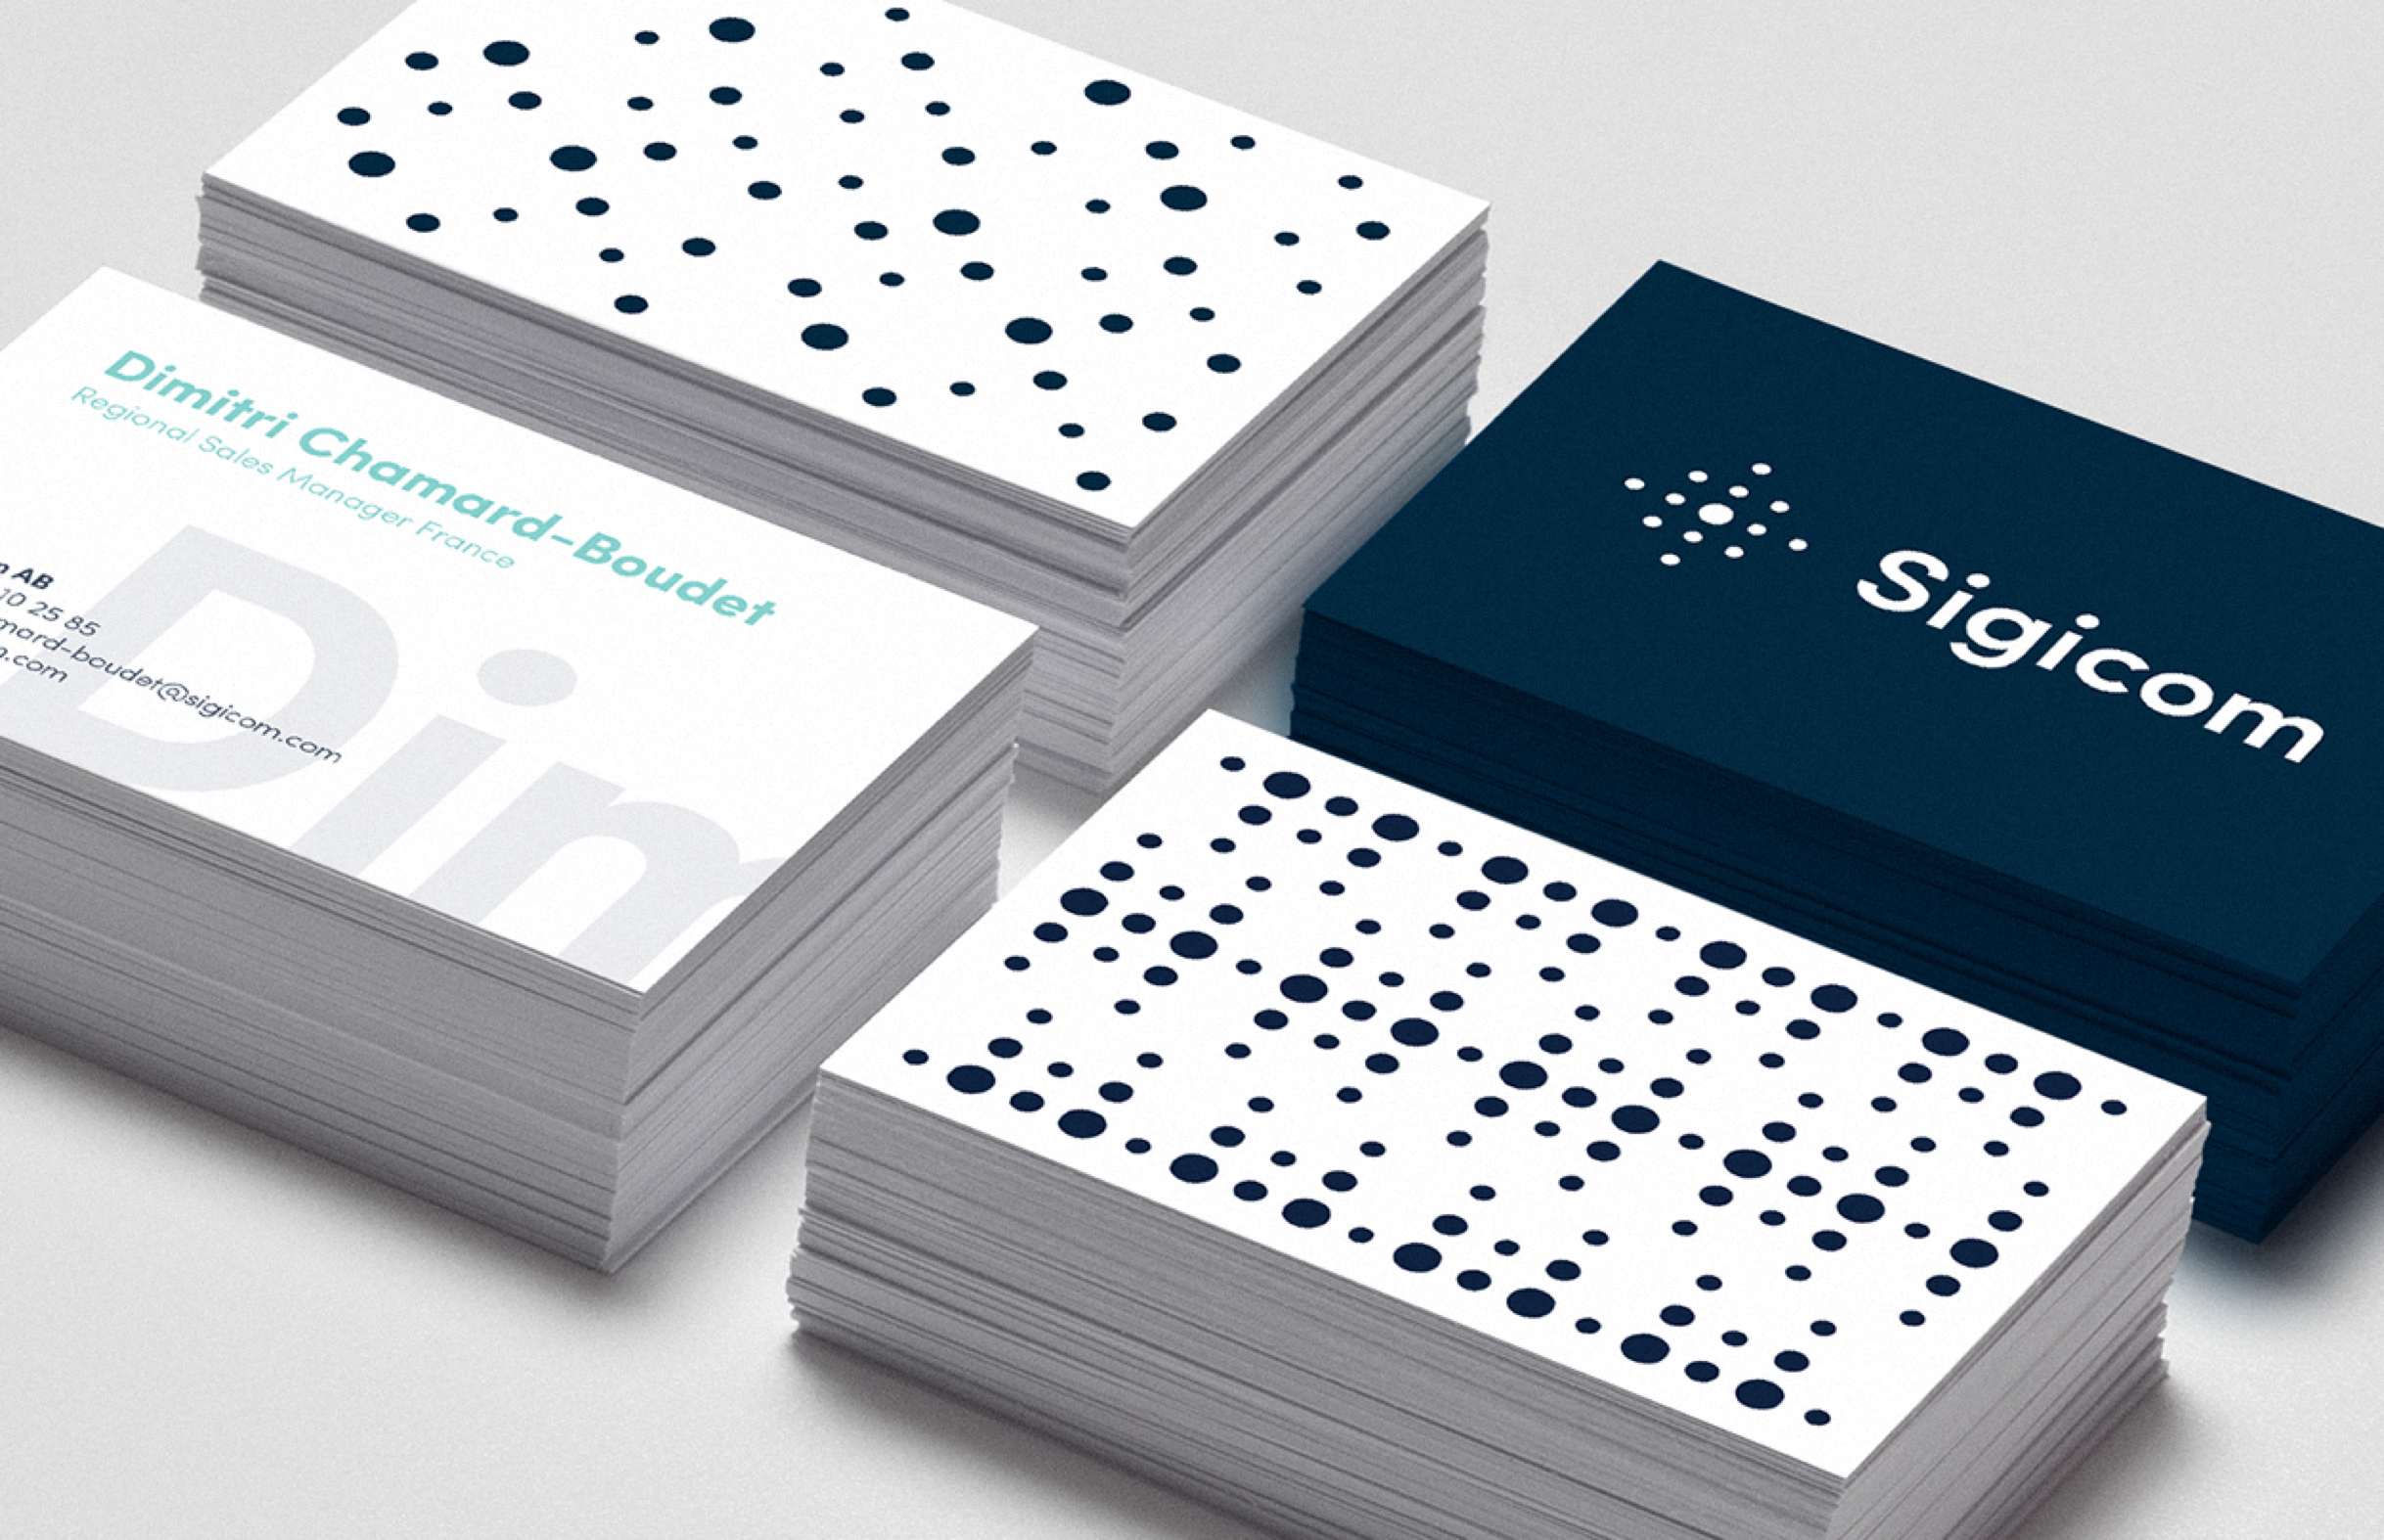 Digital strategy and design for Sigicom brand. Material from the process. Illustration showing the logotype and patterns on various Business cards.